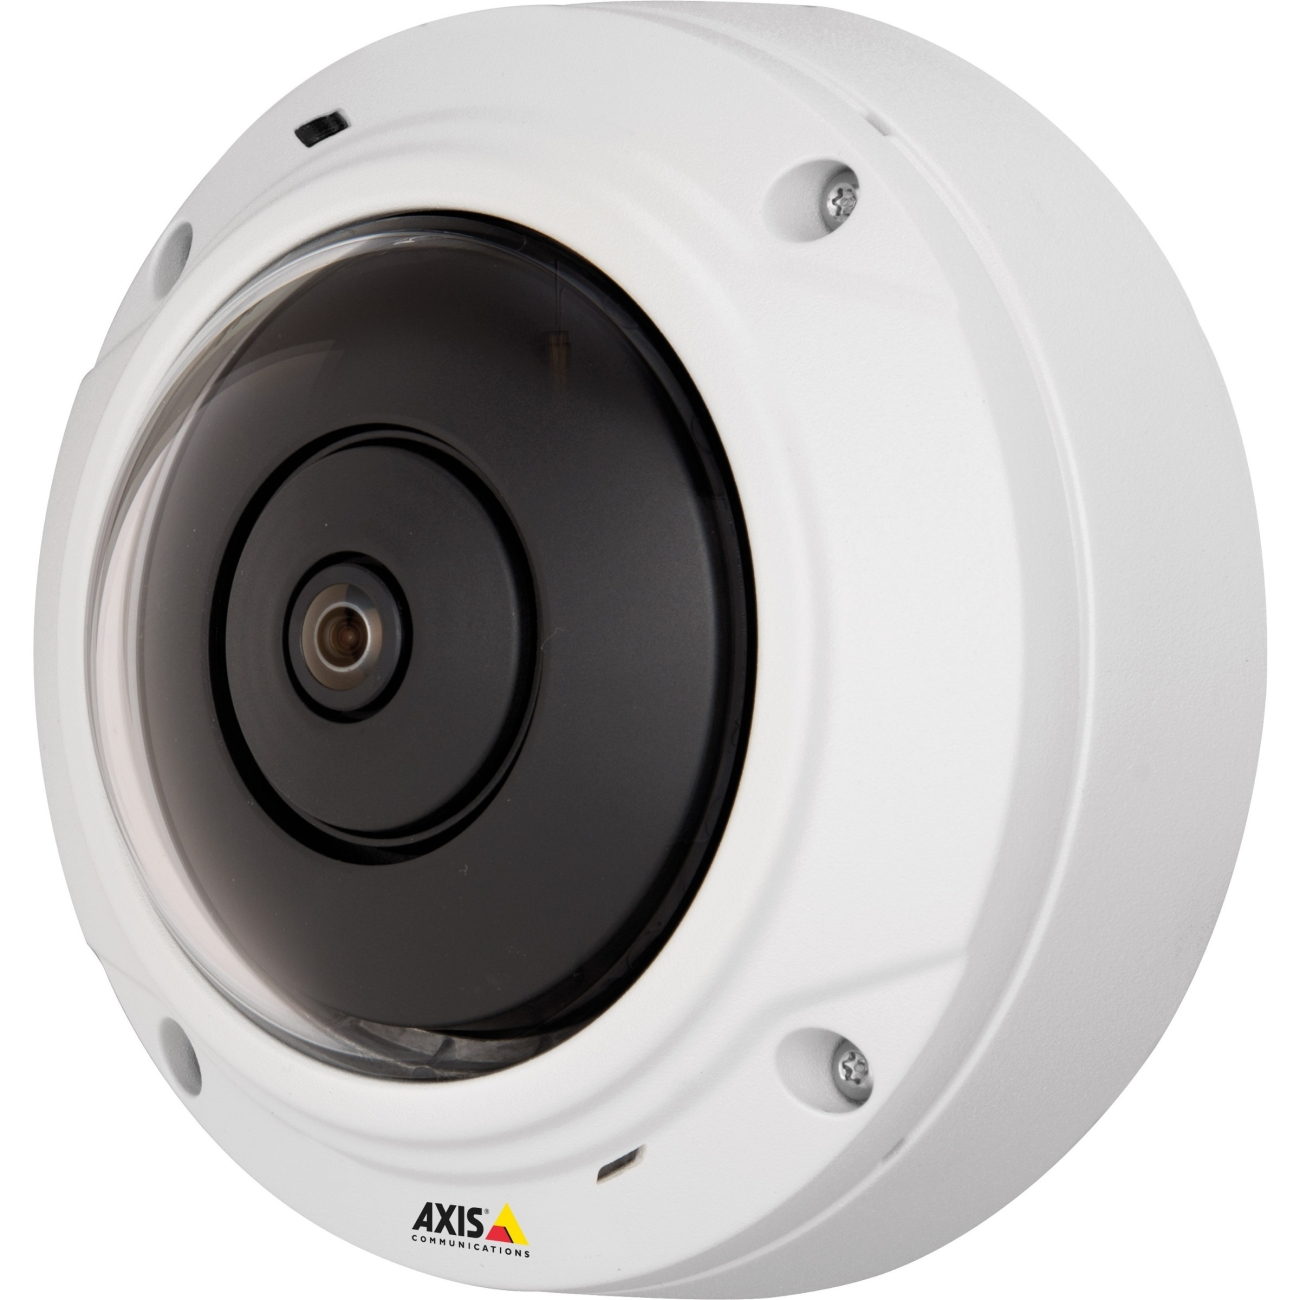 Axis M3027-pve 5 Megapixel Network Camera - Color - M12-mount - Rgb Cmos - Cable - Fast Ethernet (0556-001)